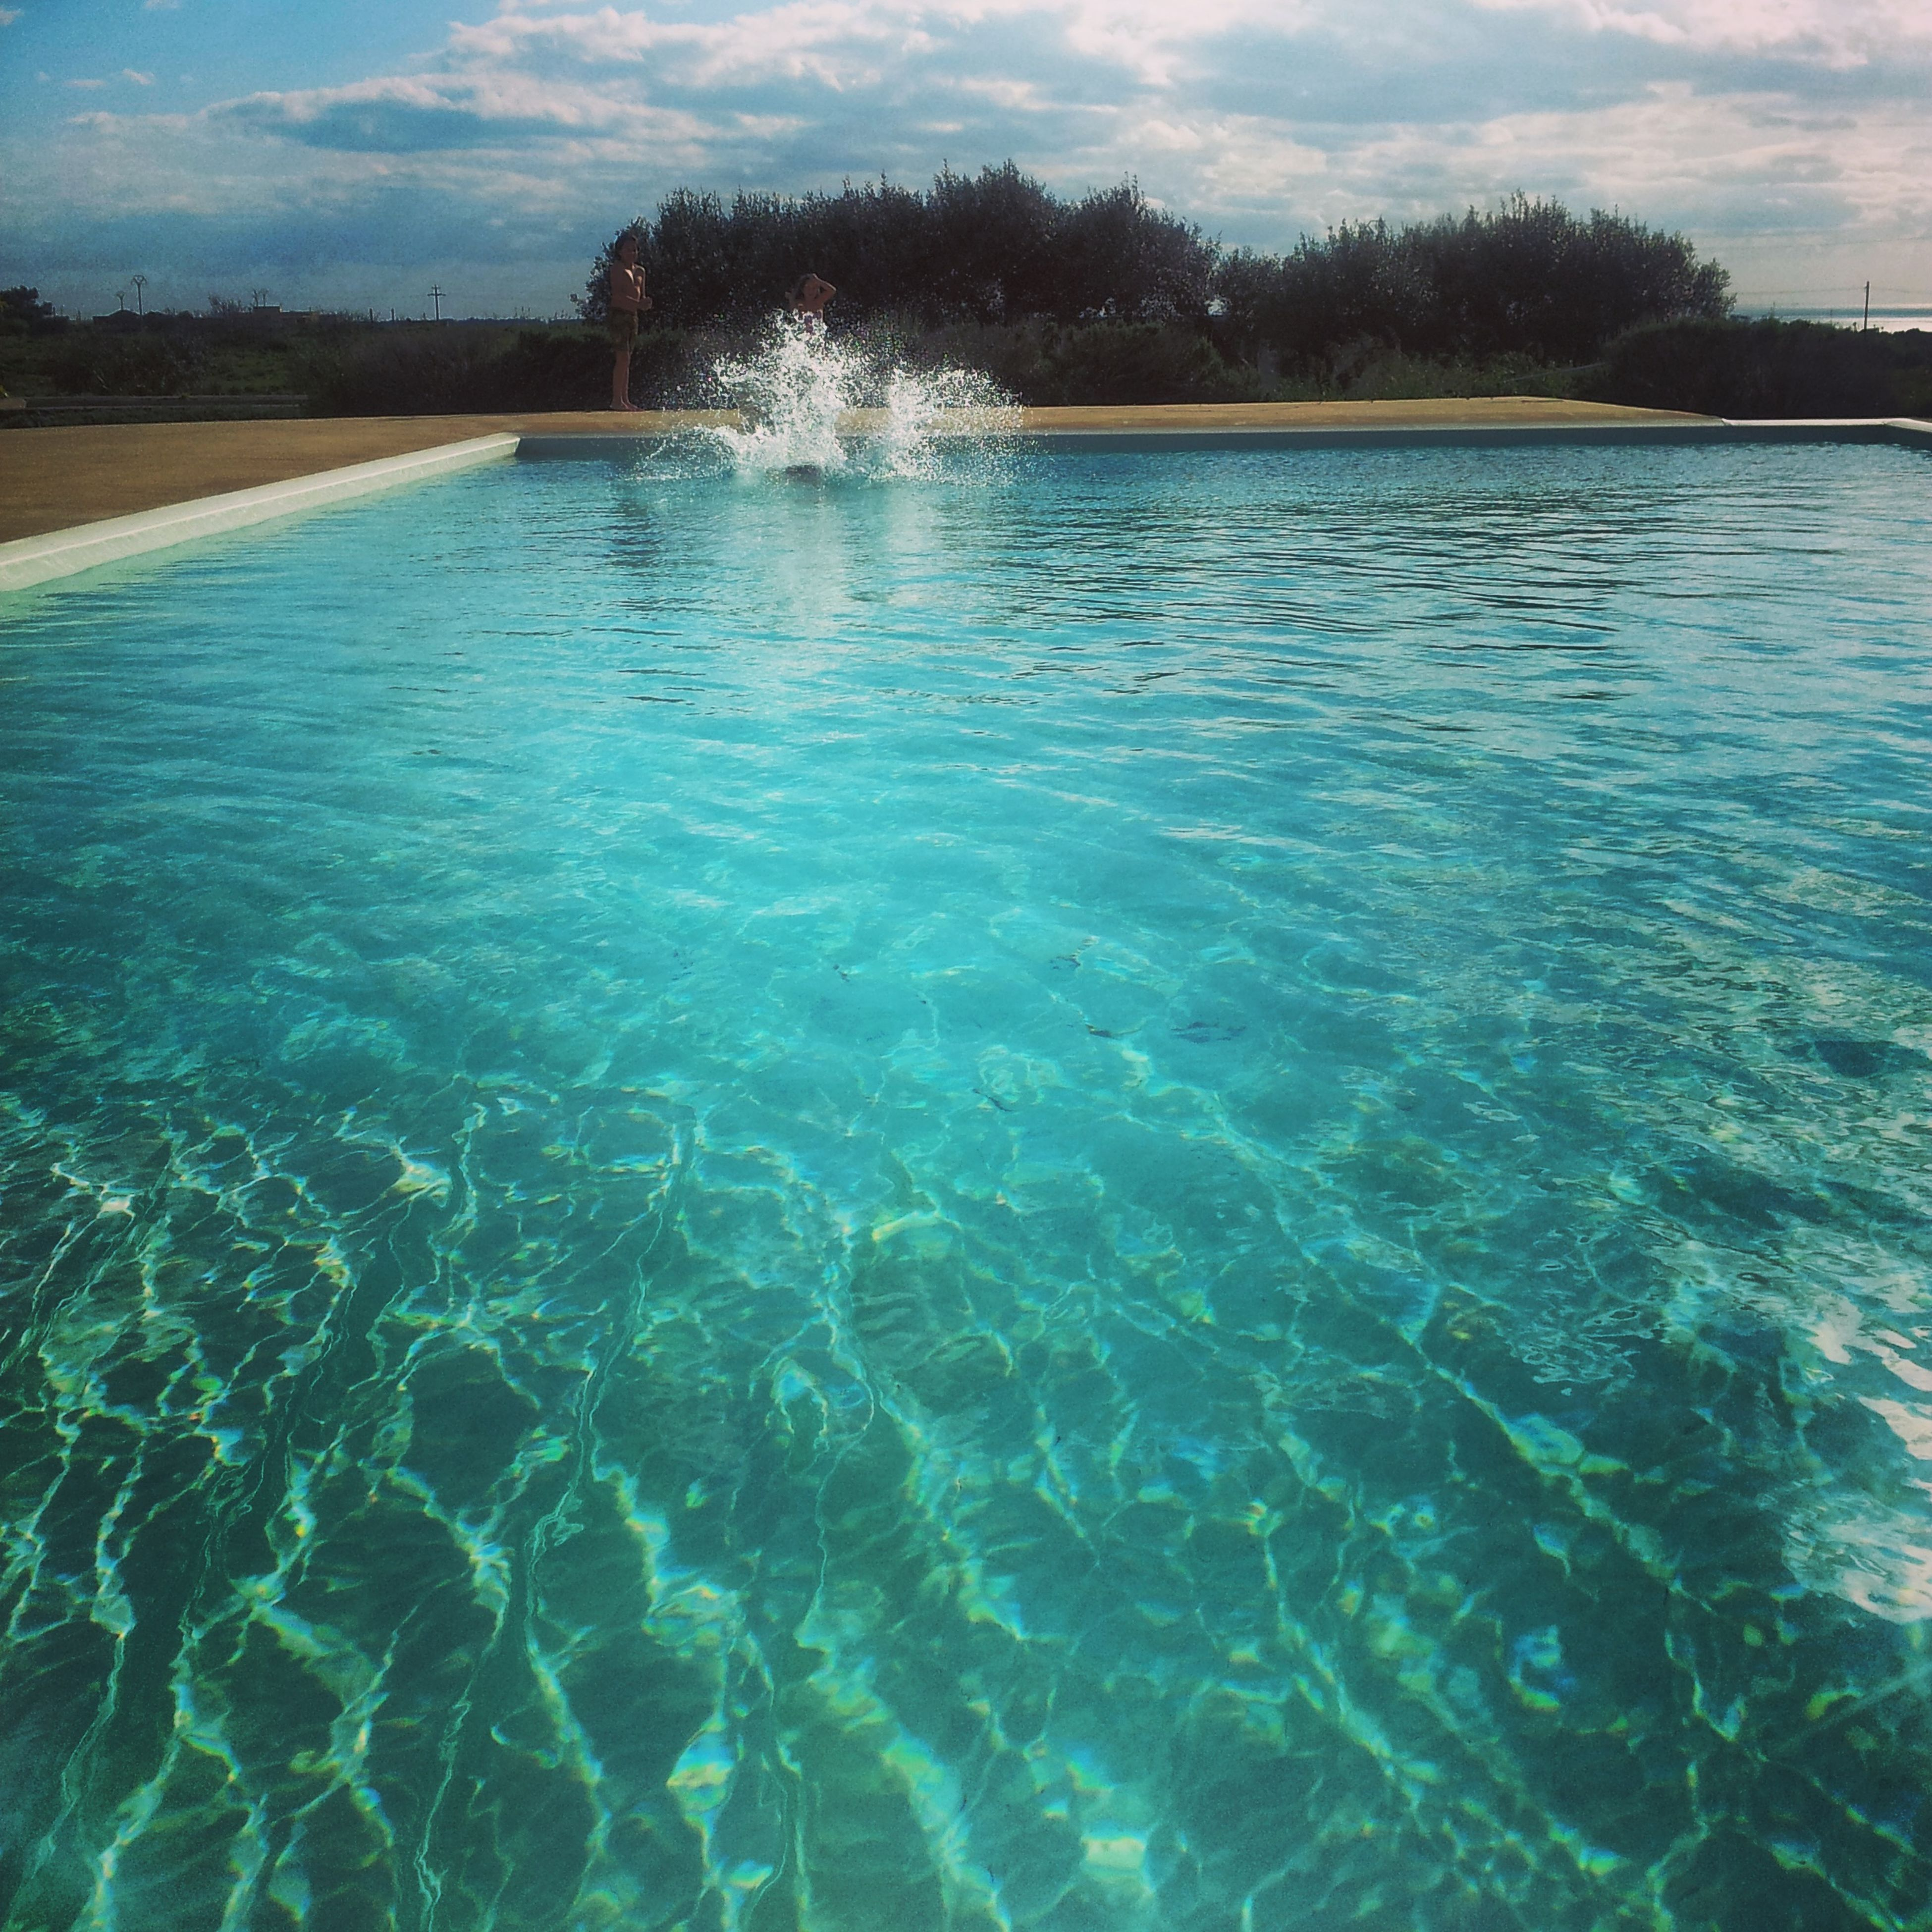 water, rippled, waterfront, blue, sea, sky, reflection, tranquil scene, tranquility, scenics, nature, beauty in nature, tree, sunlight, swimming pool, turquoise colored, idyllic, day, outdoors, no people